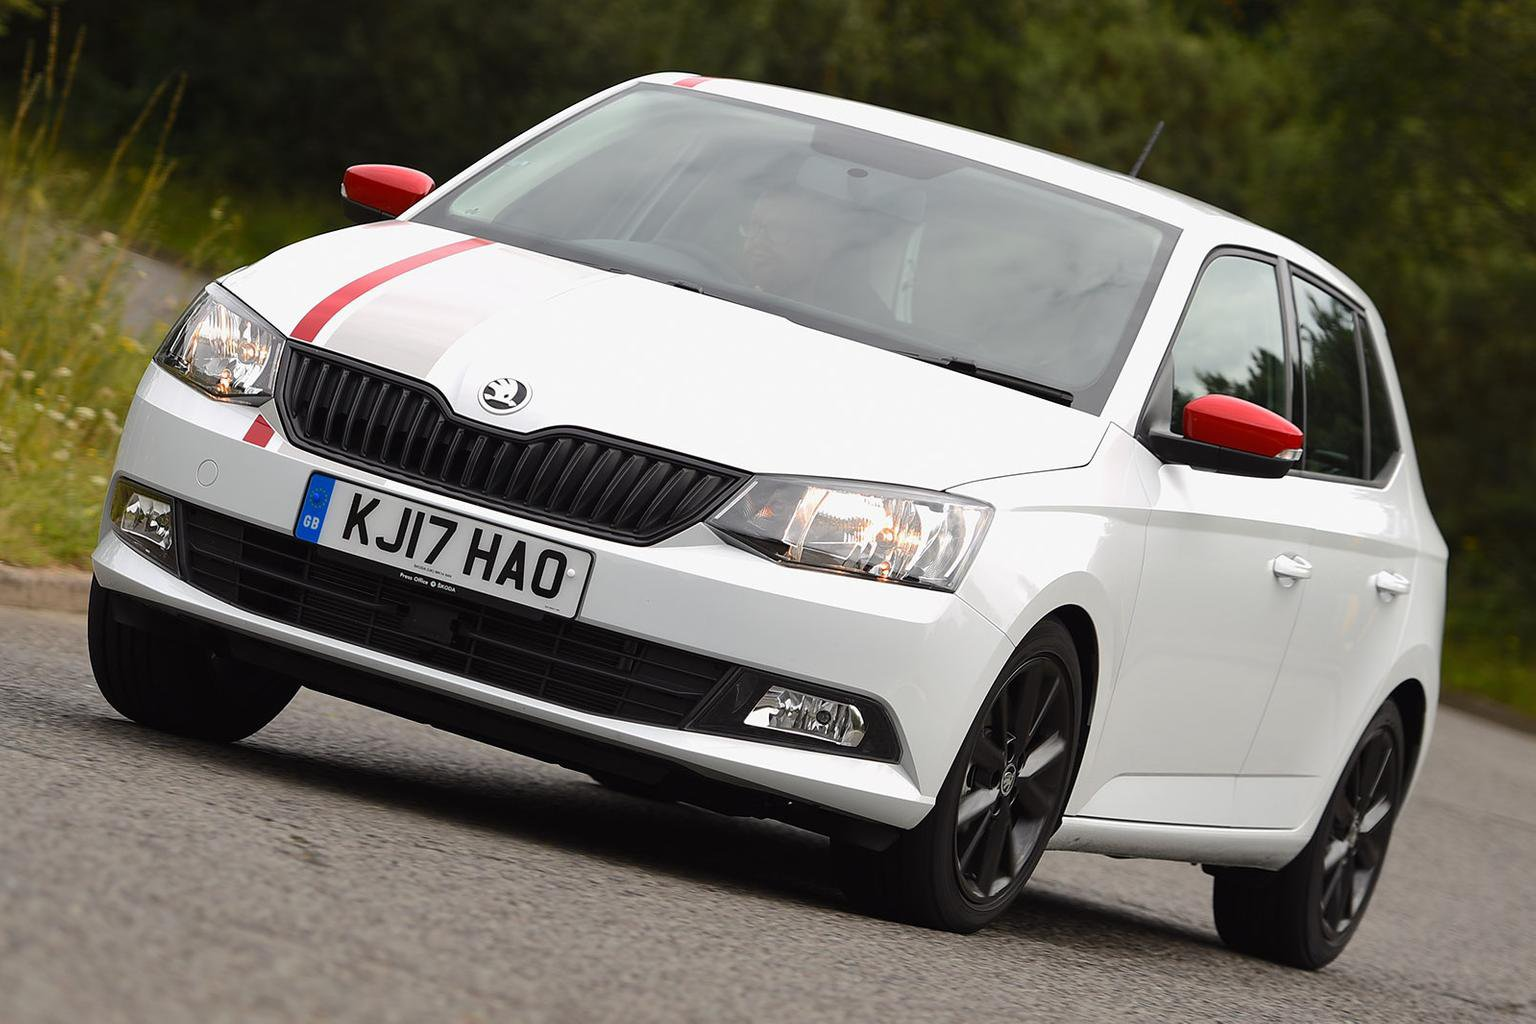 2017 Skoda Fabia 1.0 TSI 110 review